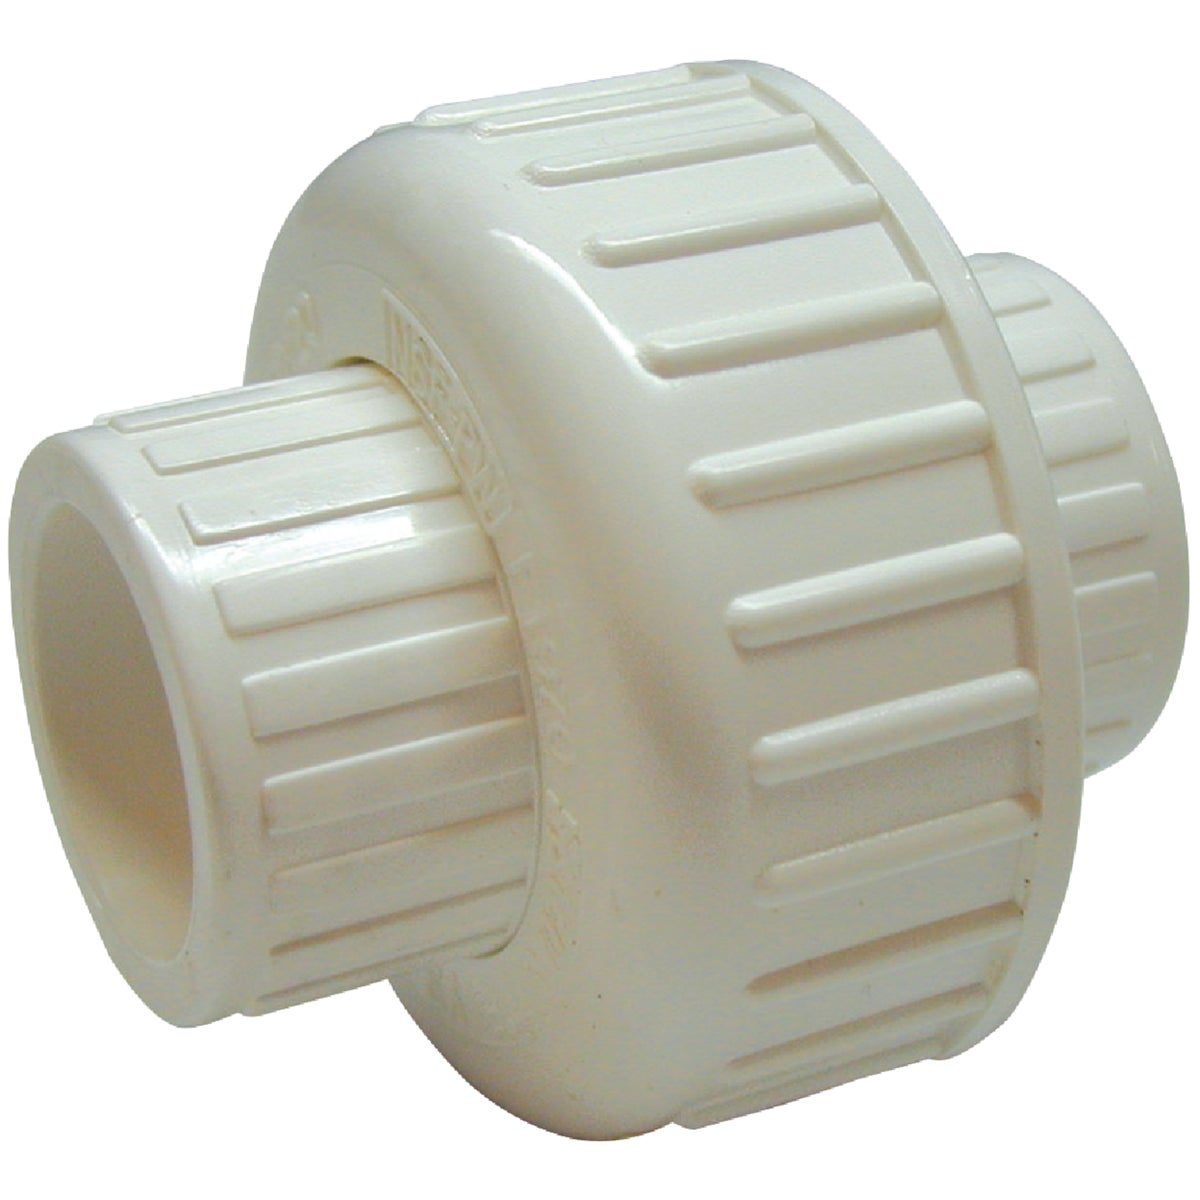 "WHT 1-1/2"" SXS PVC UNION - 164-637 by Mueller B K"